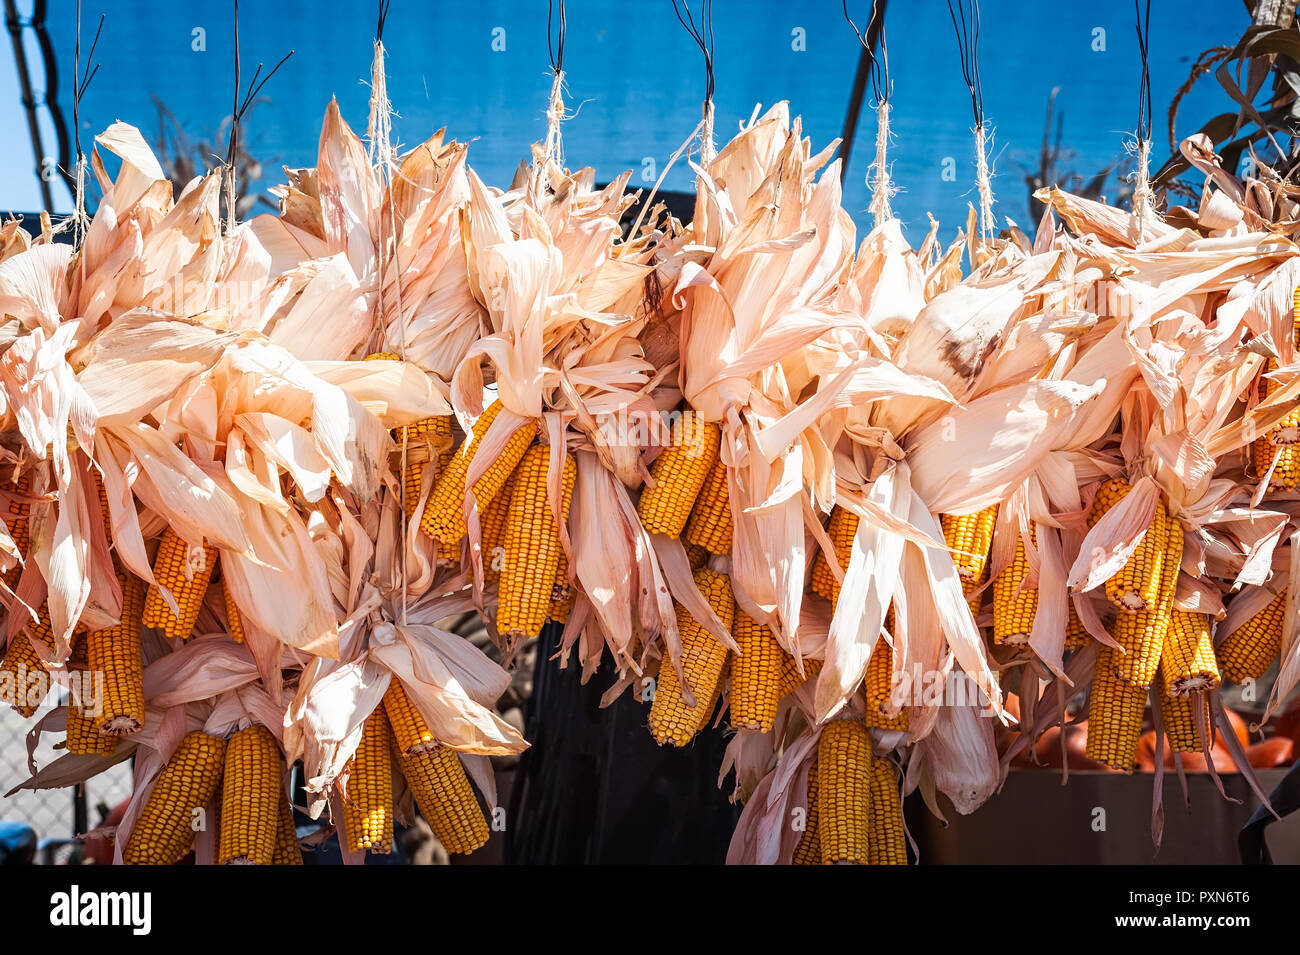 Dried ears of corn strung together and hung up for display in New Mexico. - Stock Image